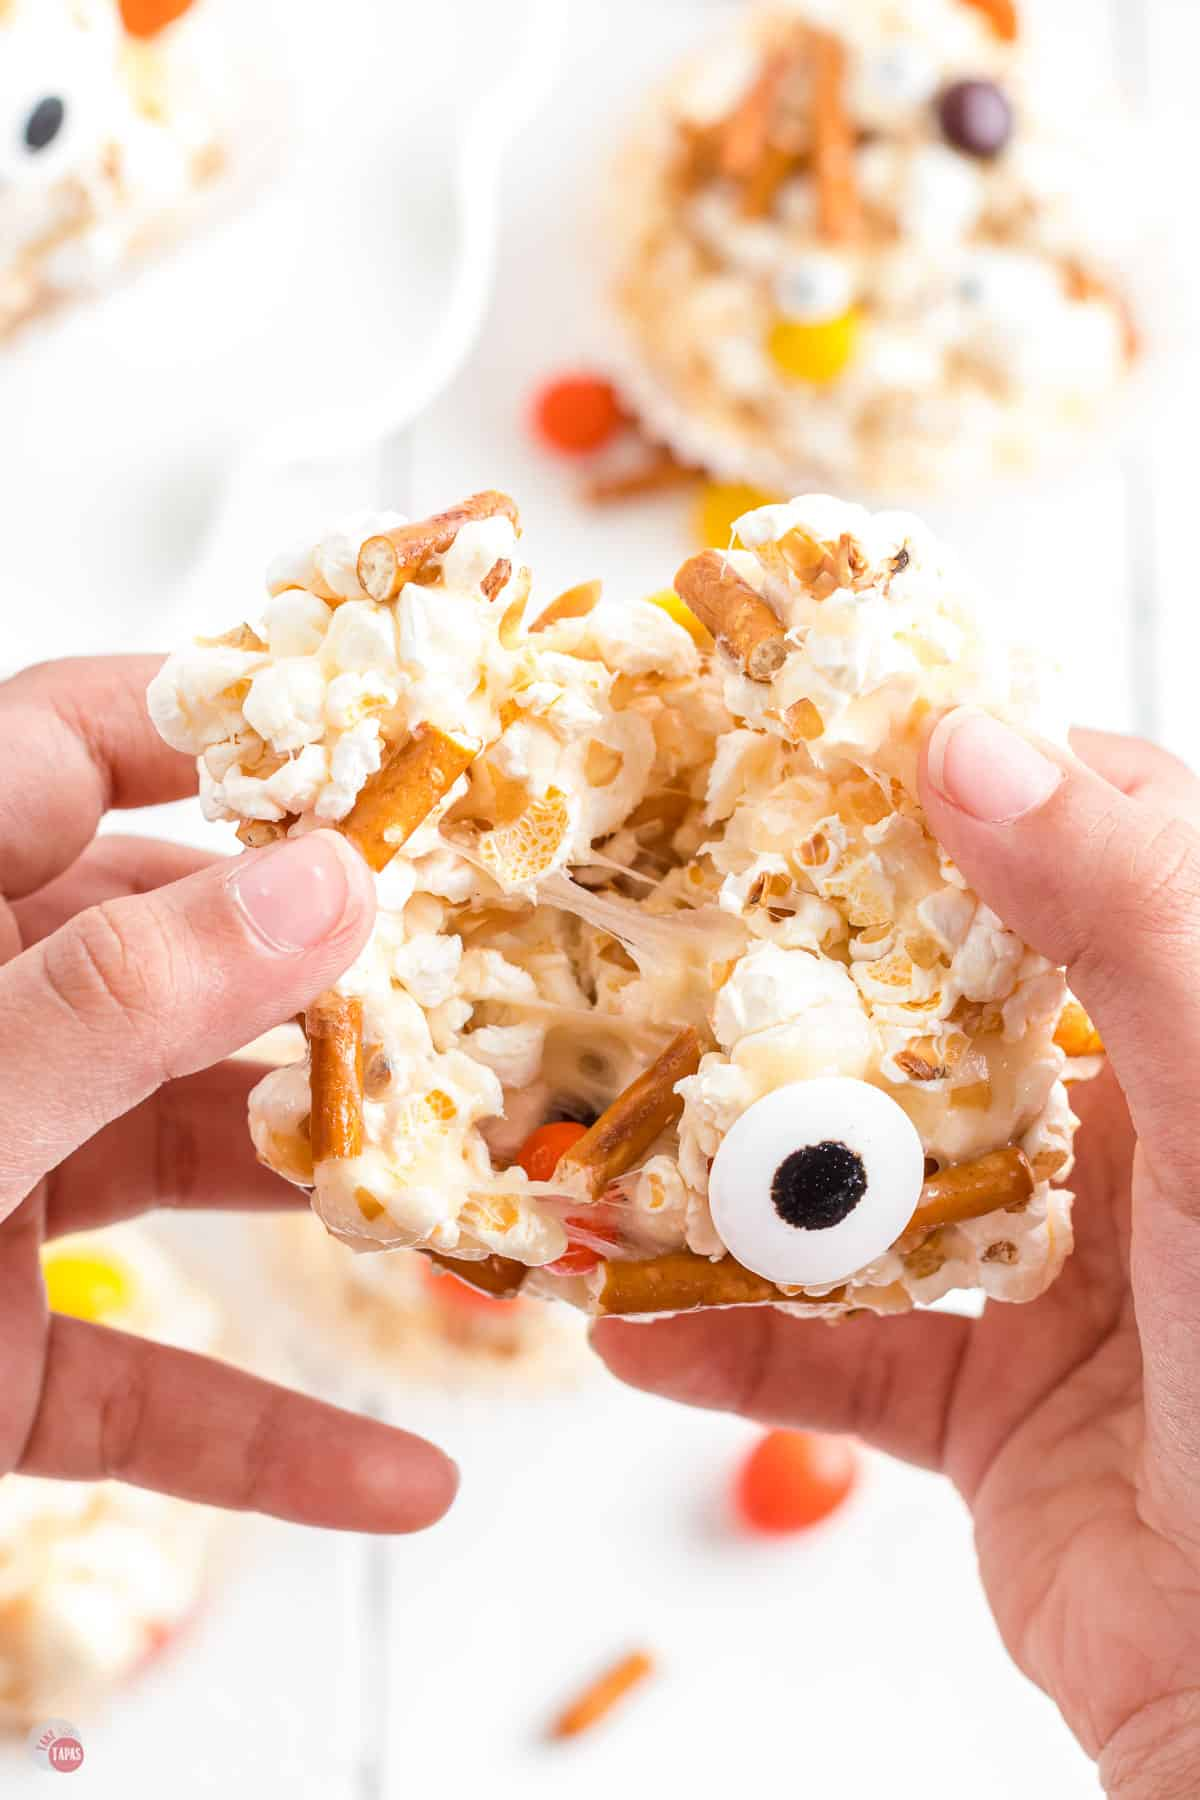 two hands pulling apart a popcorn ball